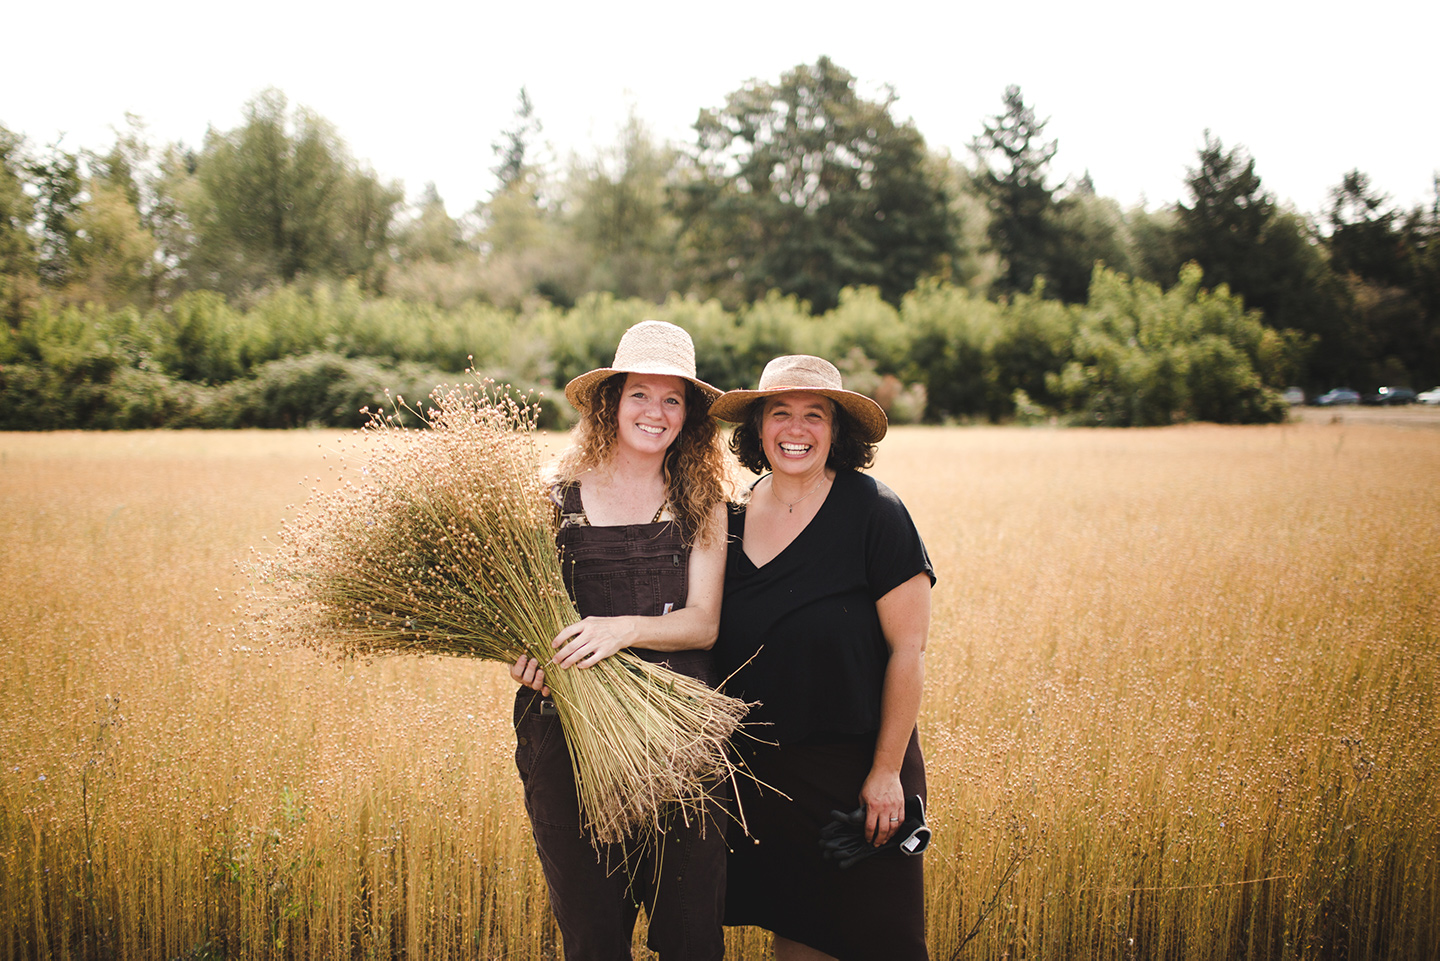 Fibrevolution - Two women determined to bring flax back to Western Oregon. For In Good Tilth.